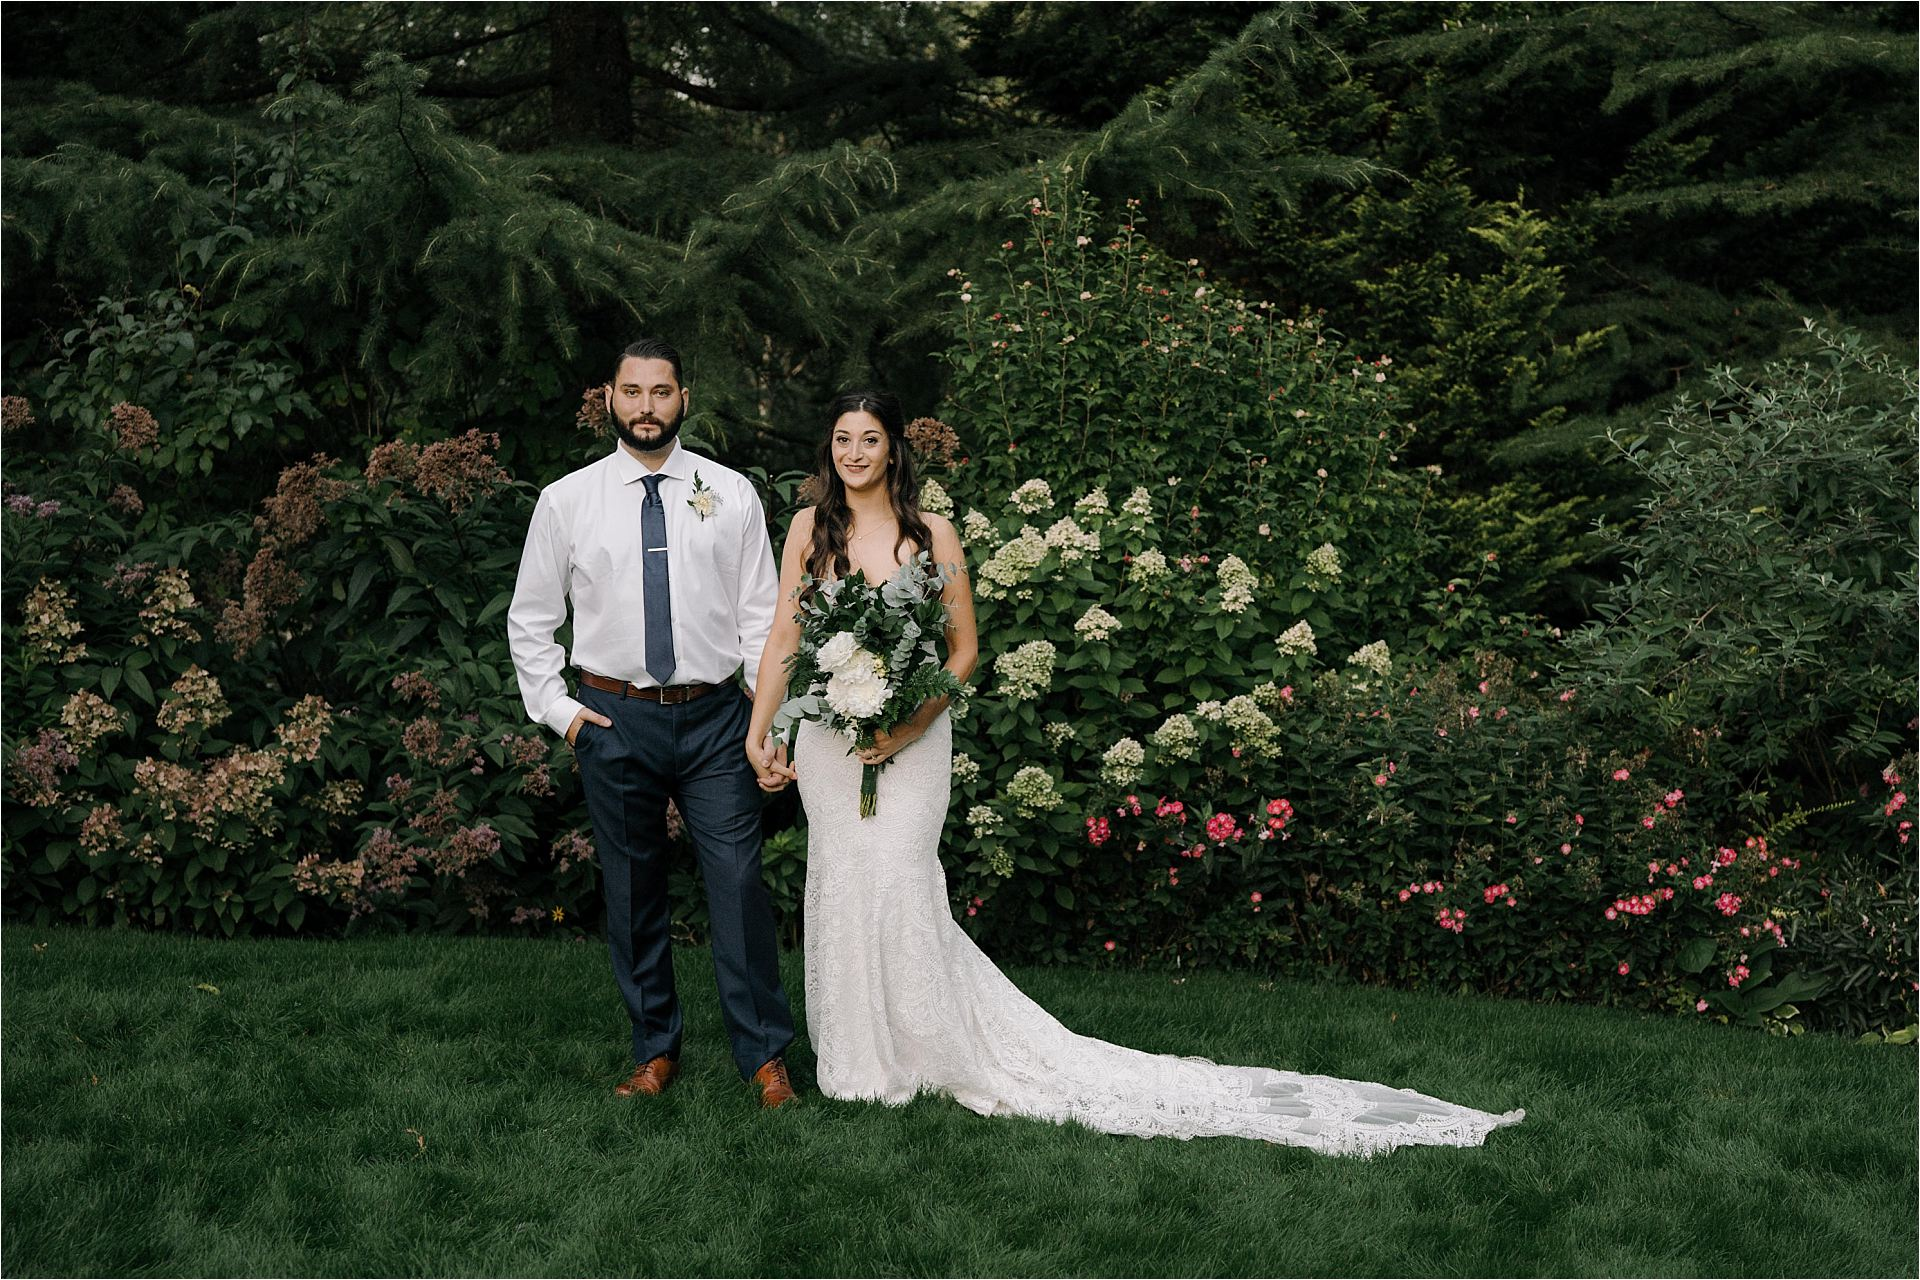 Bride and groom Portraits at Lucy's Garden after ceremony